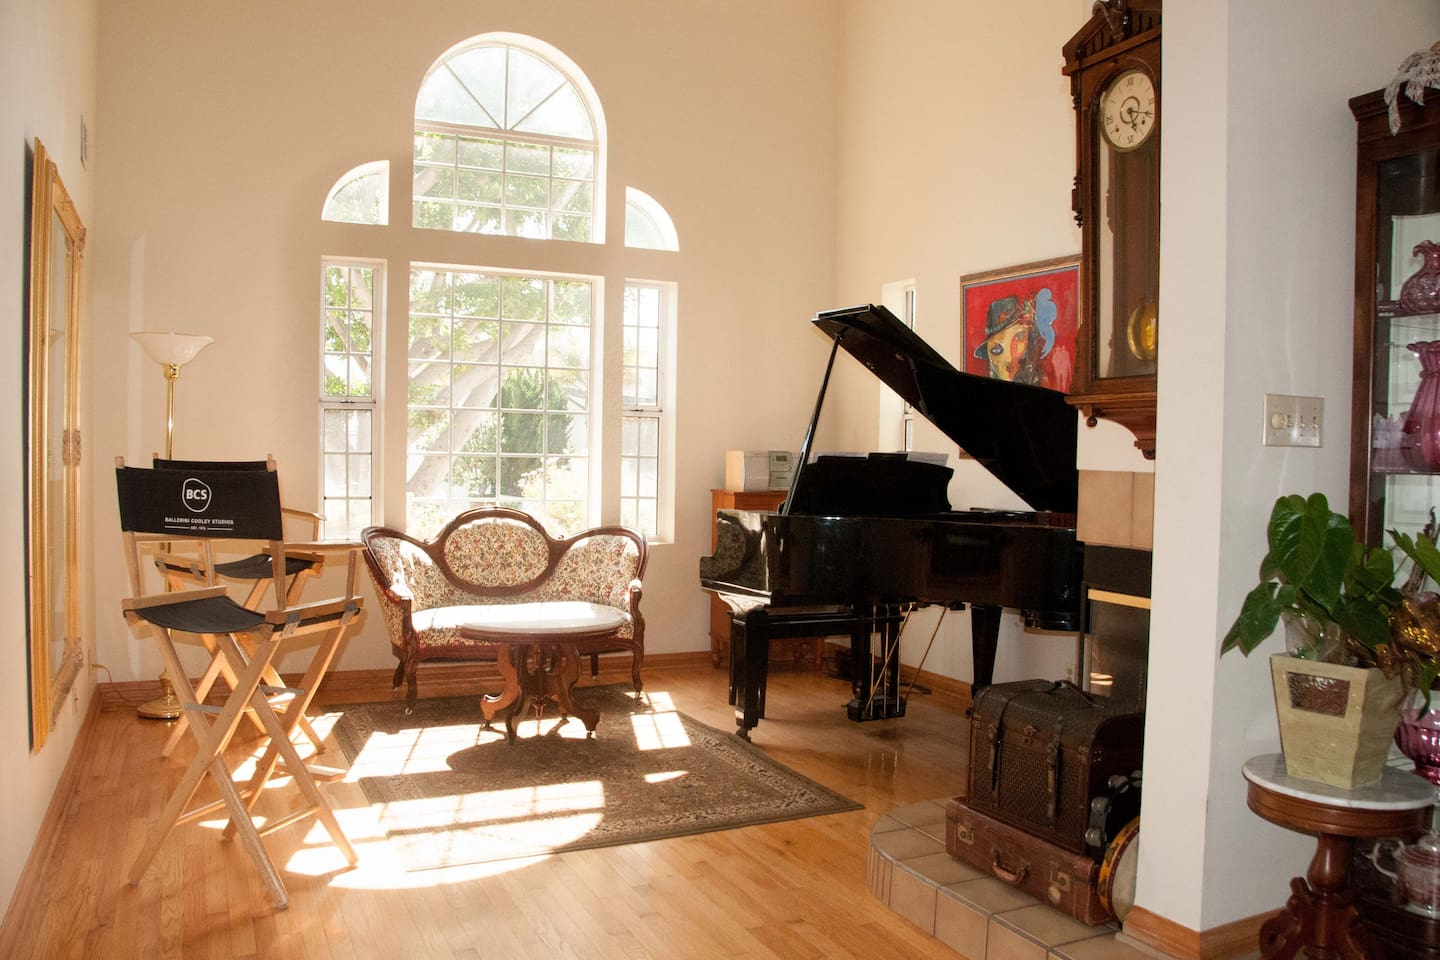 The Piano Room. Notice the tambourines in front of the fireplace under the clock. This is also the best room for dancing;)